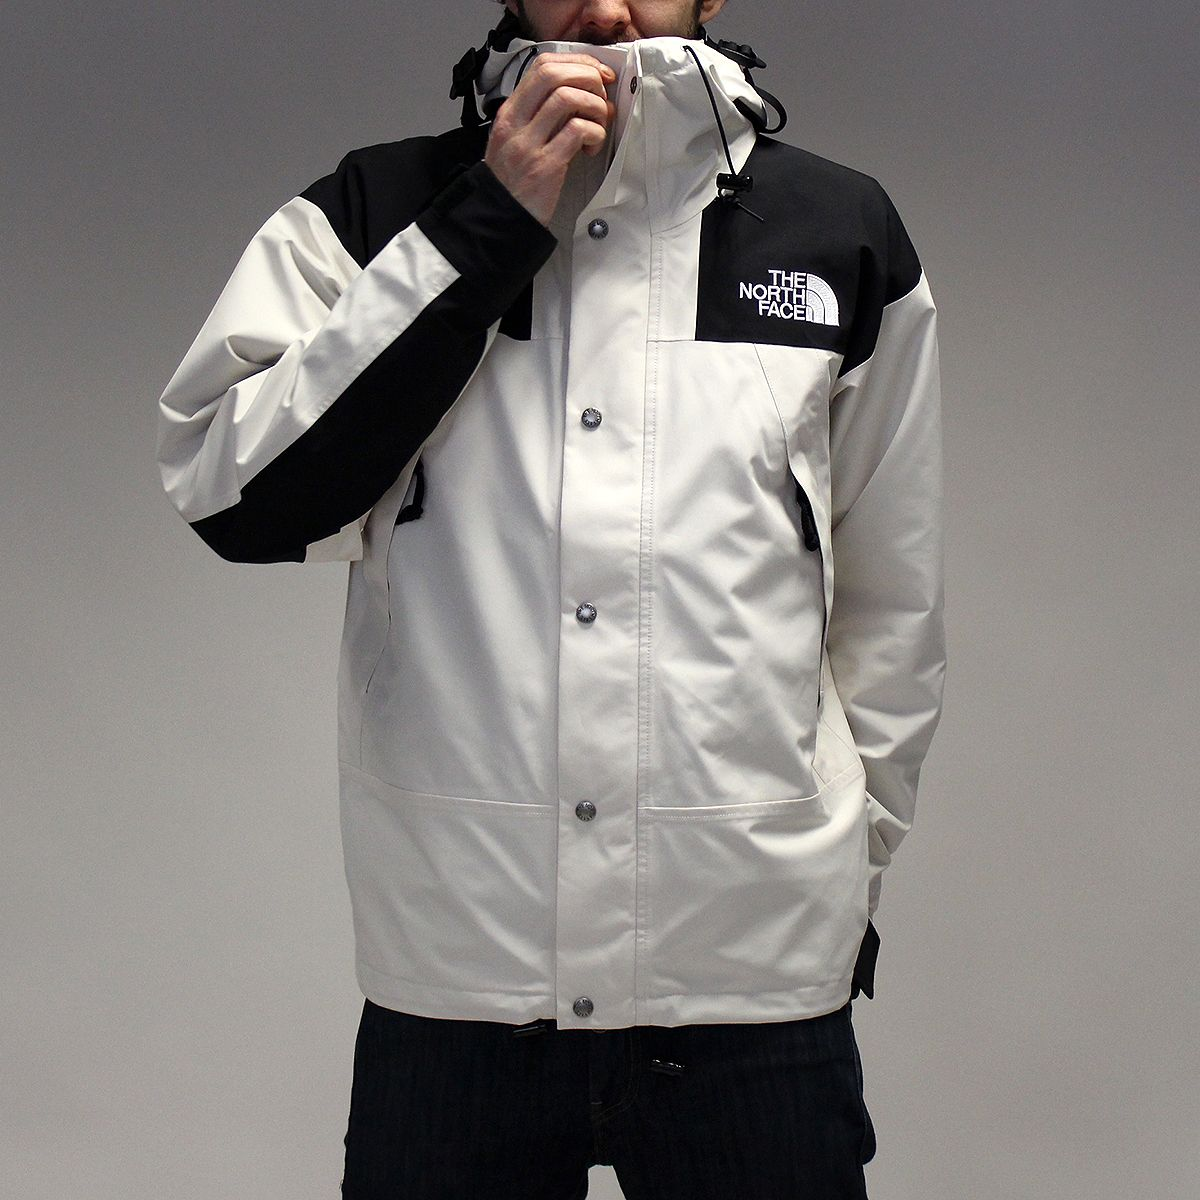 a12f695b5 THE NORTH FACE 1990 MOUNTAIN GTX JACKET – VINTAGE WHITE | COLOR ...